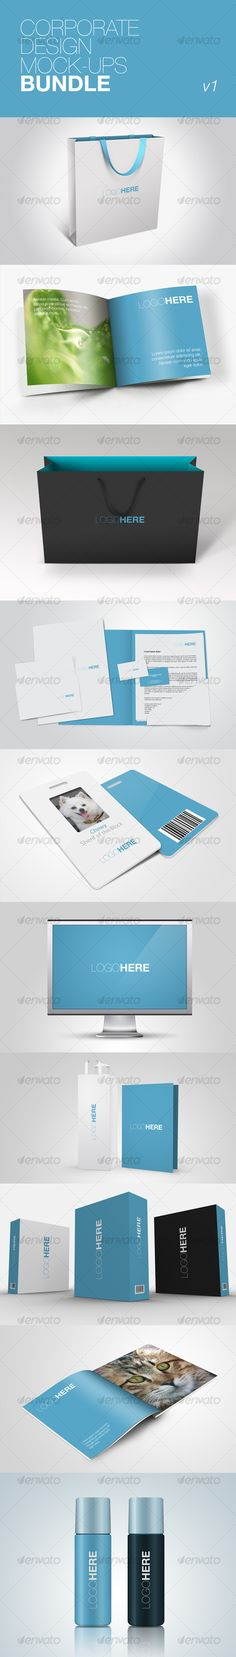 Corporate Design Mock-ups Bundle v1 - GraphicRiver - $11